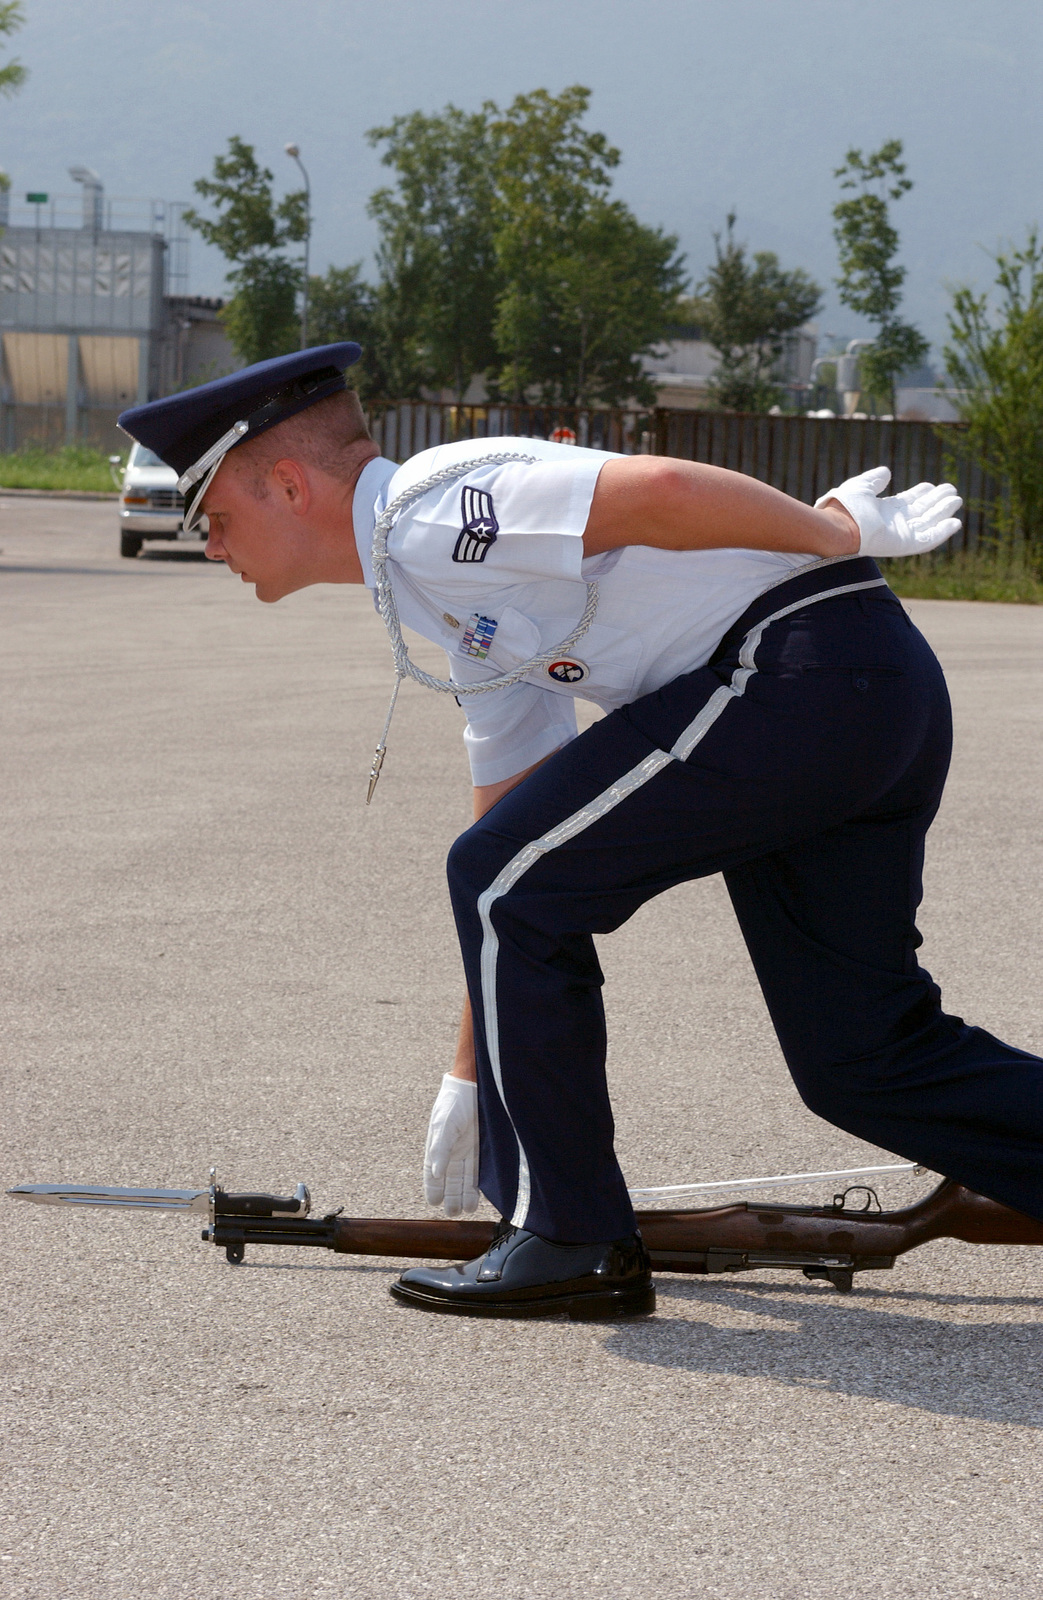 """US Air Force (USAF) SENIOR AIRMAN (SRA) Joshua Hodgin, a member of the 31st Fighter Wing (FW), Honor Guard performs the """"ground arms"""" maneuver with his M-1 rifle during inspection drills for Wings Honor Guard, at Aviano Air Base (AB), Italy"""